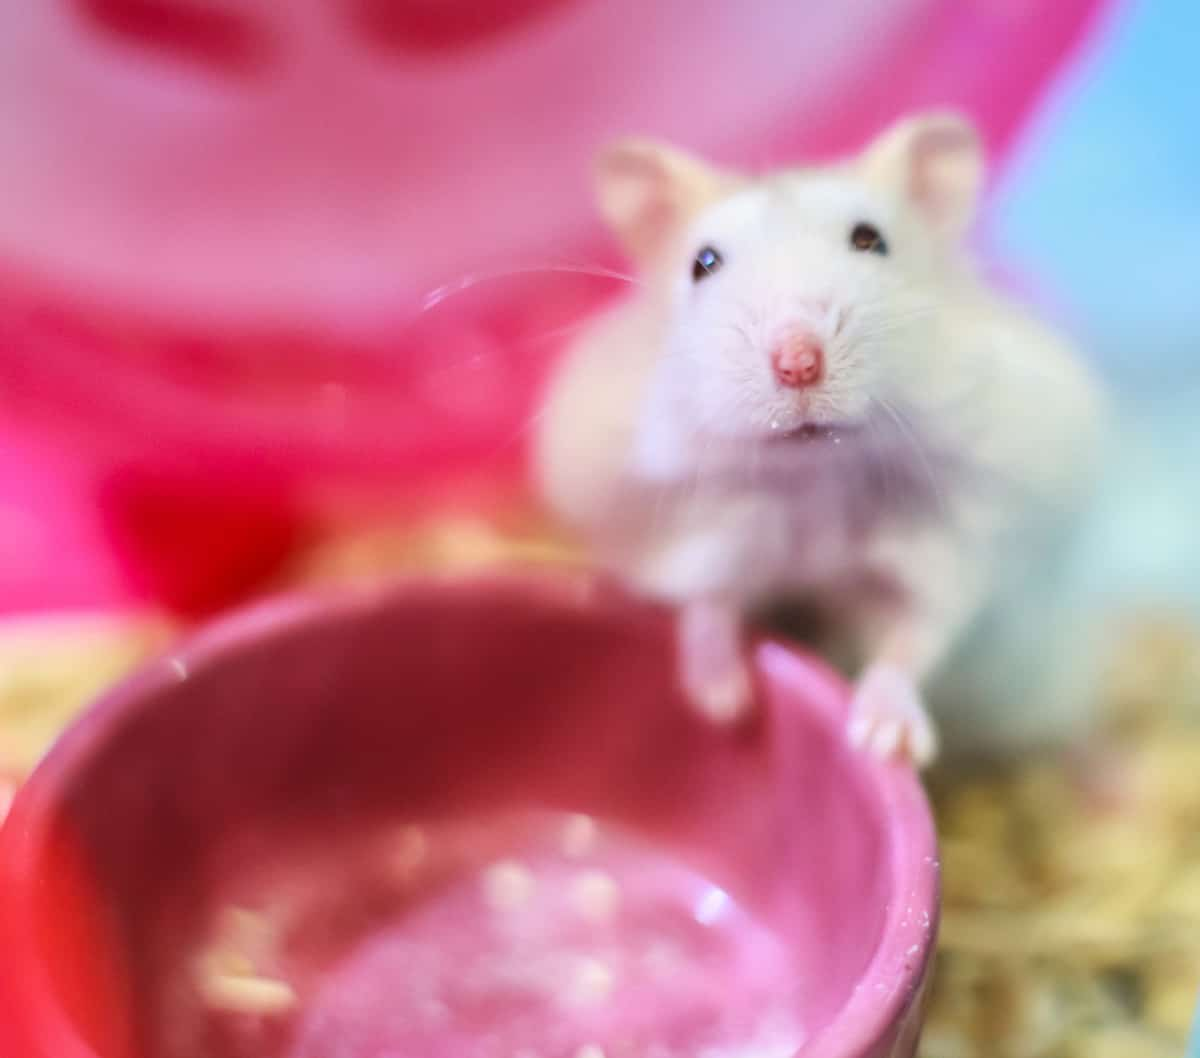 Cute Exotic Winter White Dwarf Hamster standing two legs begging for pet food with innocent face